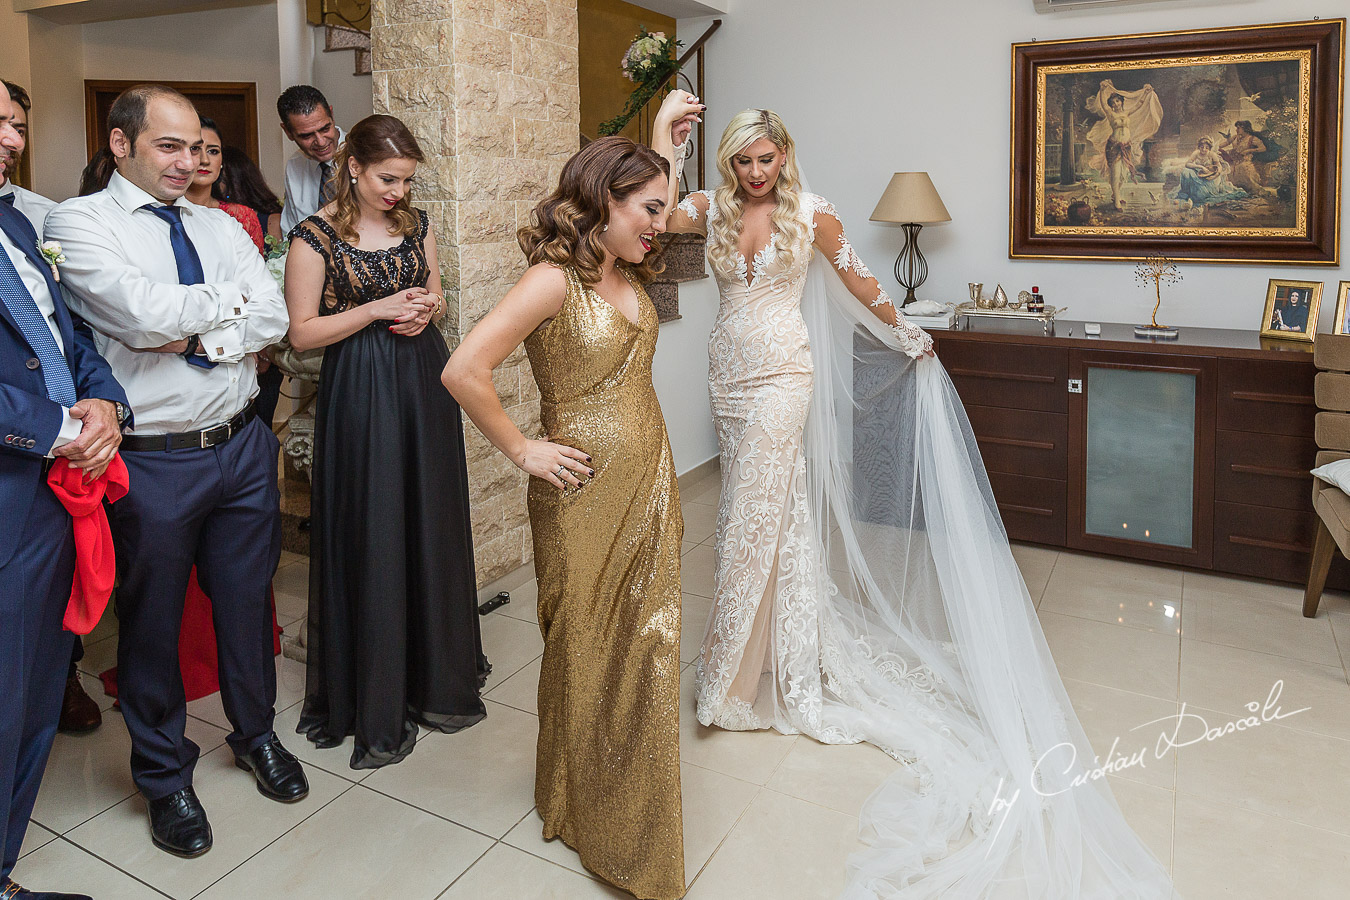 Traditional Zomanta moments from the bride's getting ready captured at an elegant and romantic wedding at Elias Beach Hotel by Cristian Dascalu.